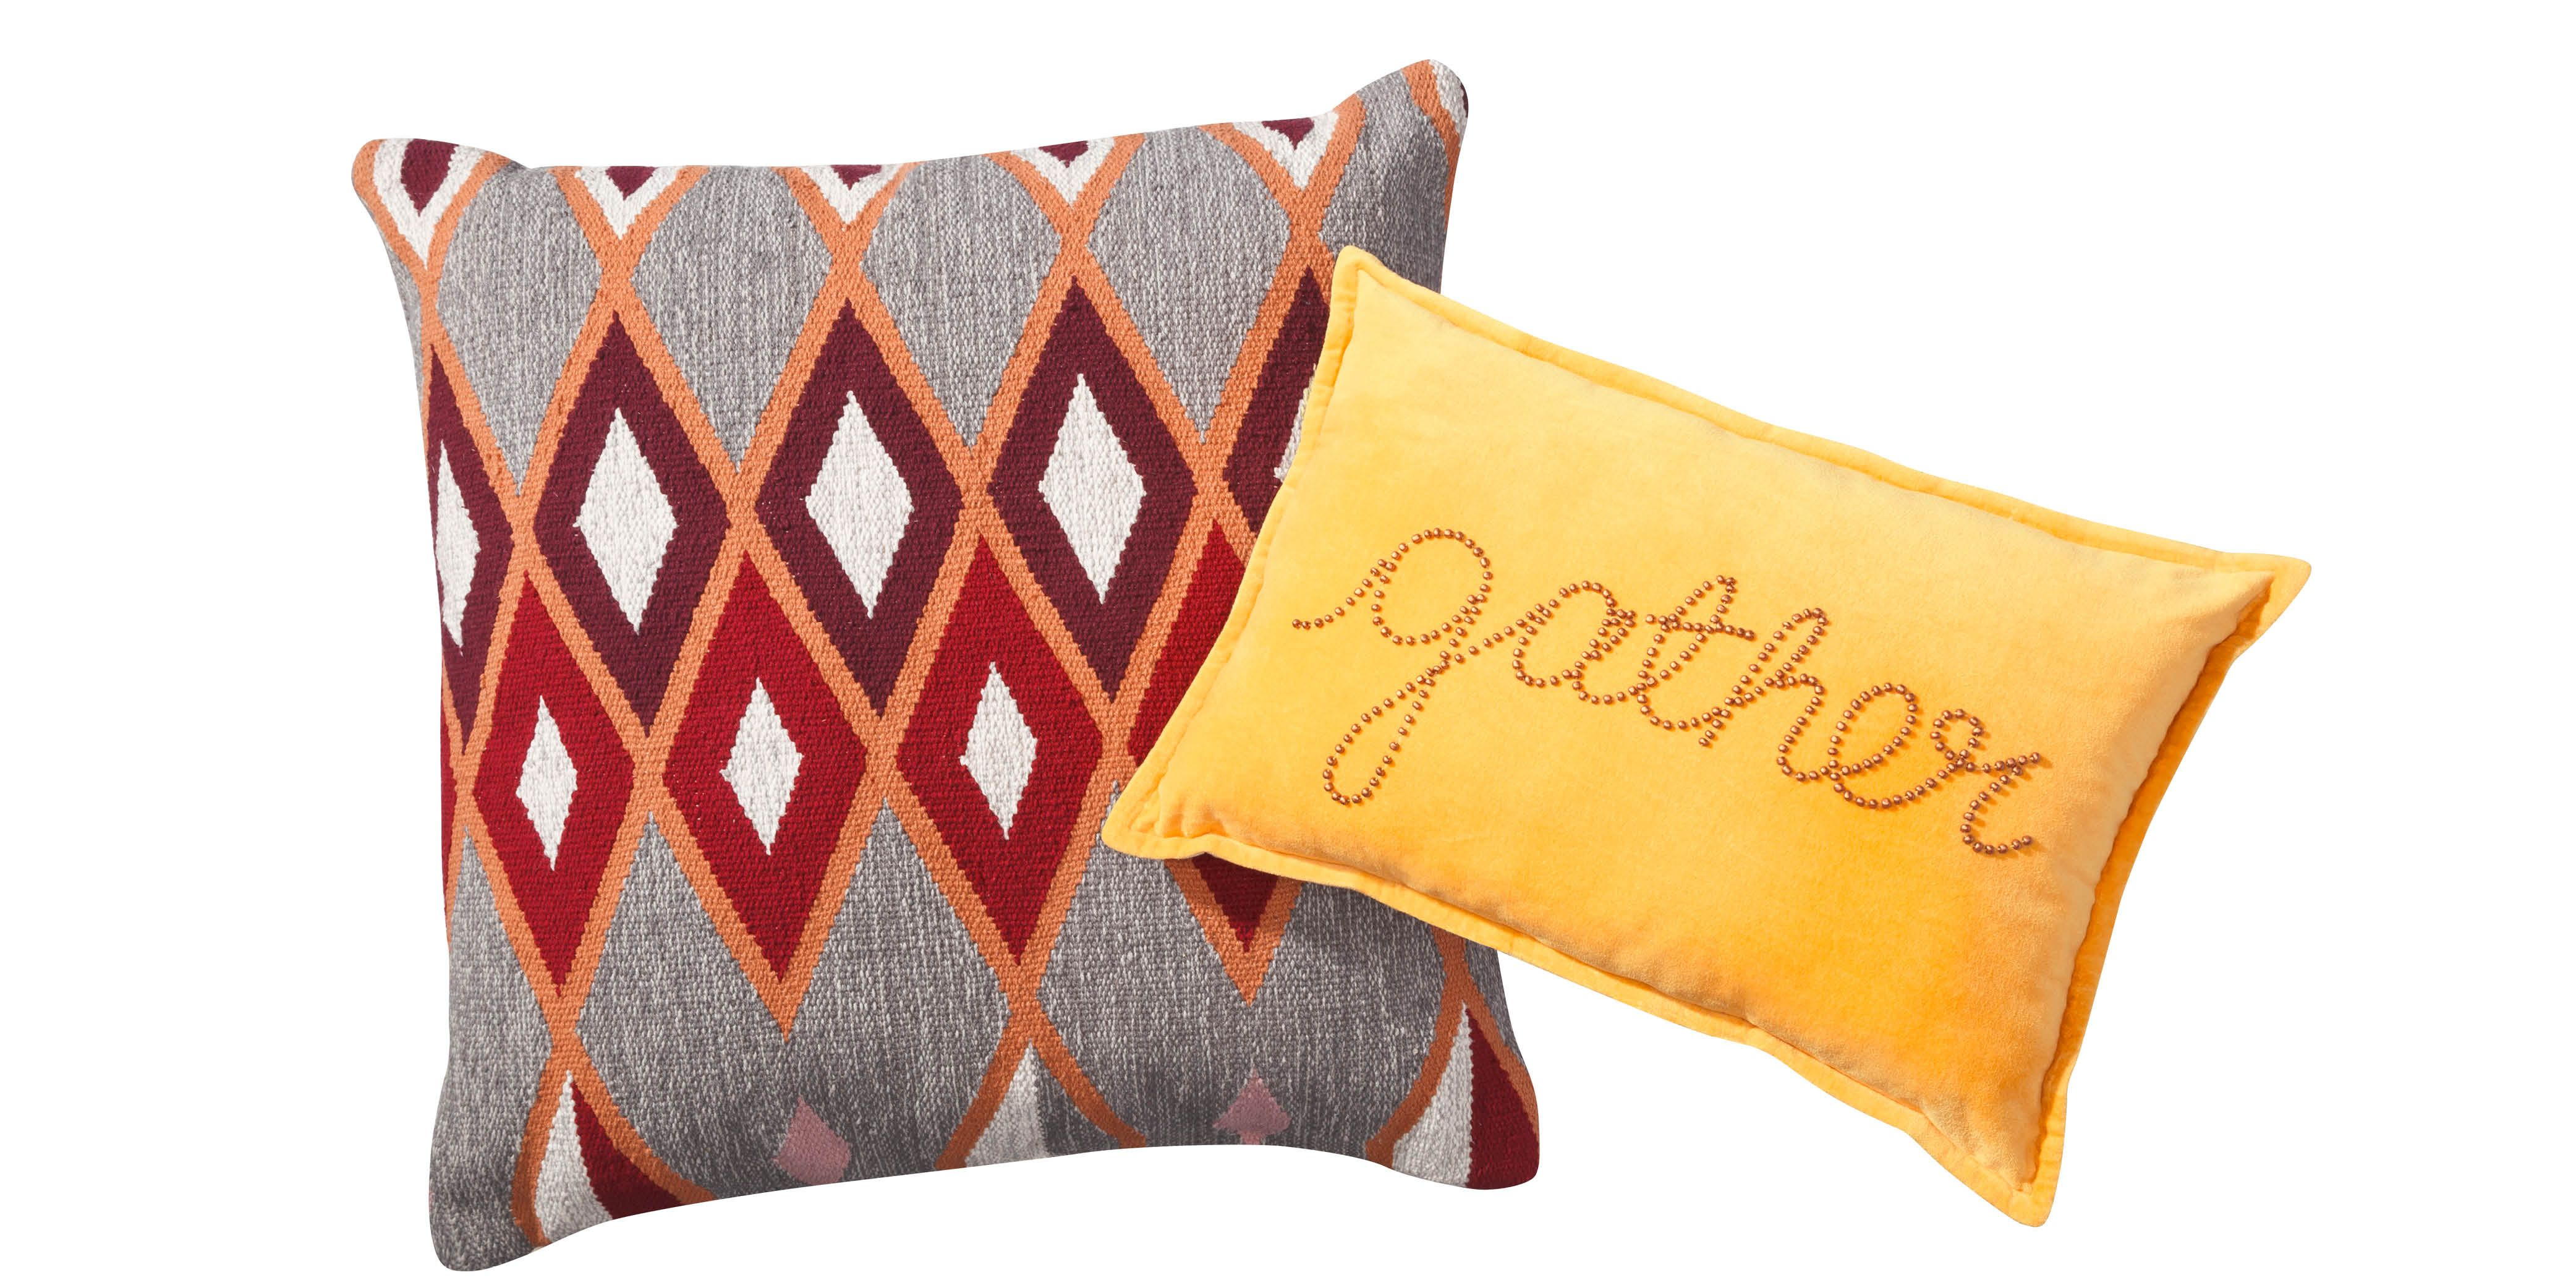 Fall Home Items at Target - Target Threshold and Nate Berkus